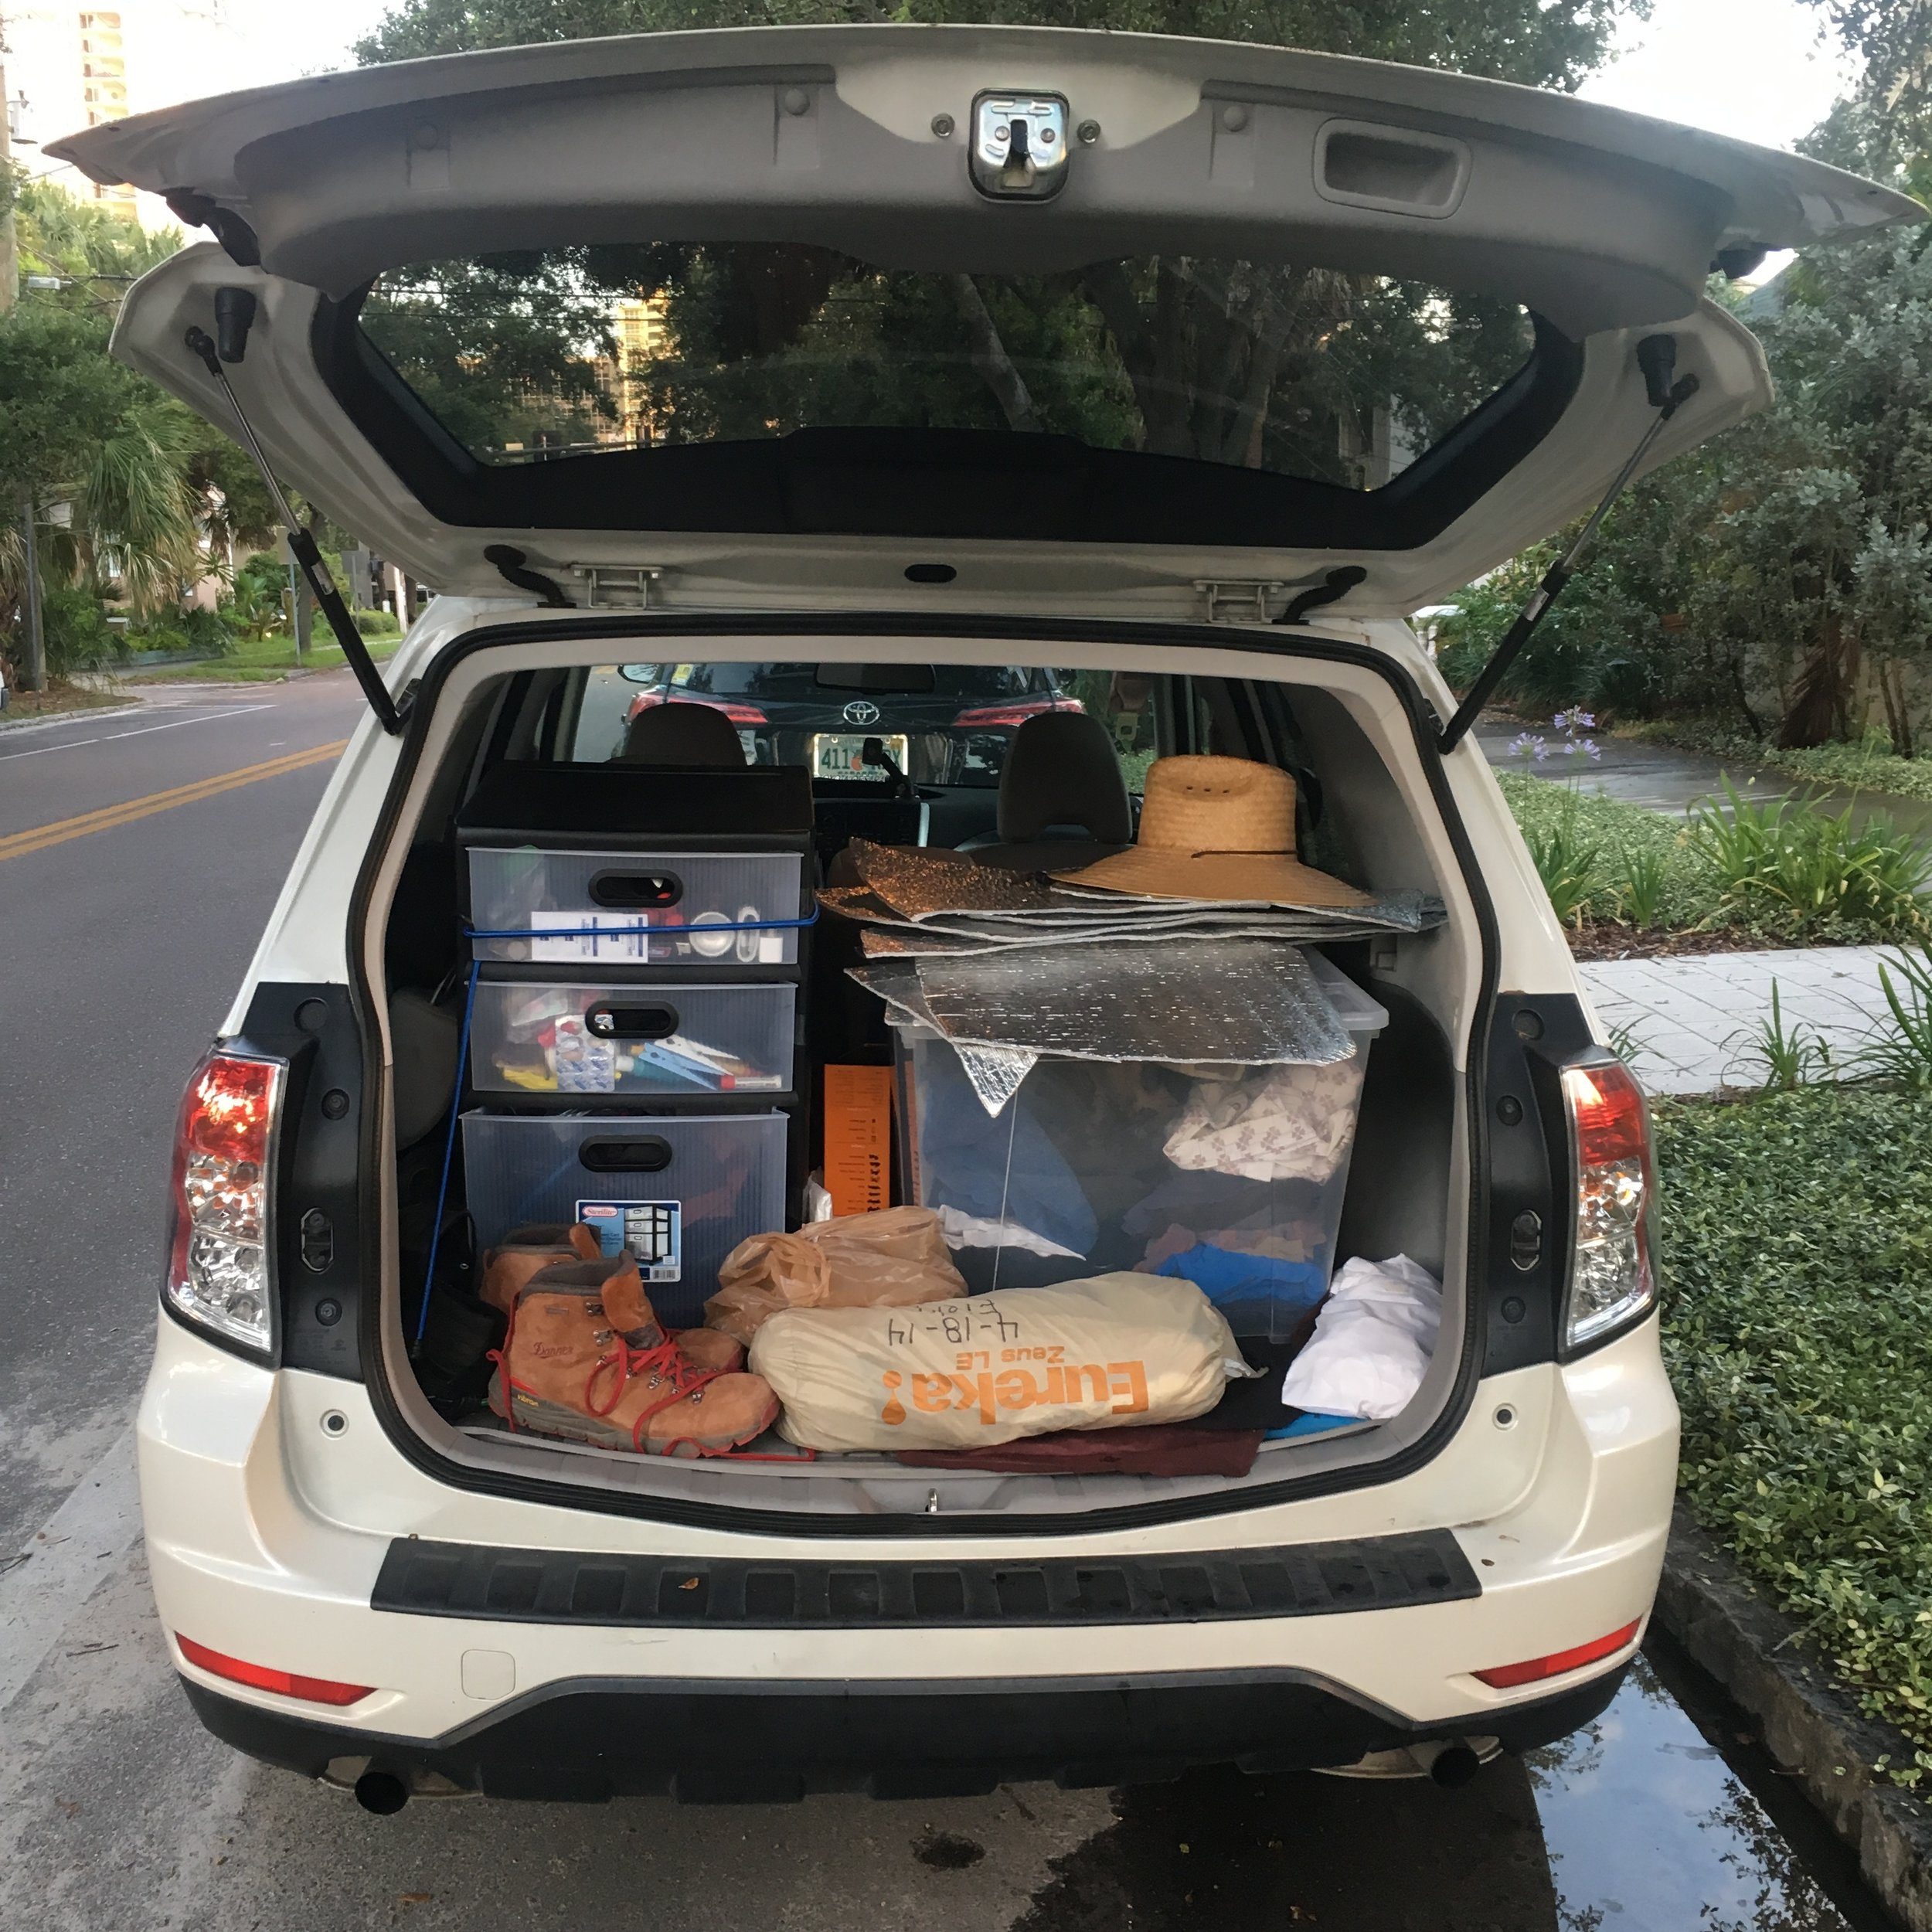 The car packed and ready on the morning of my departure.